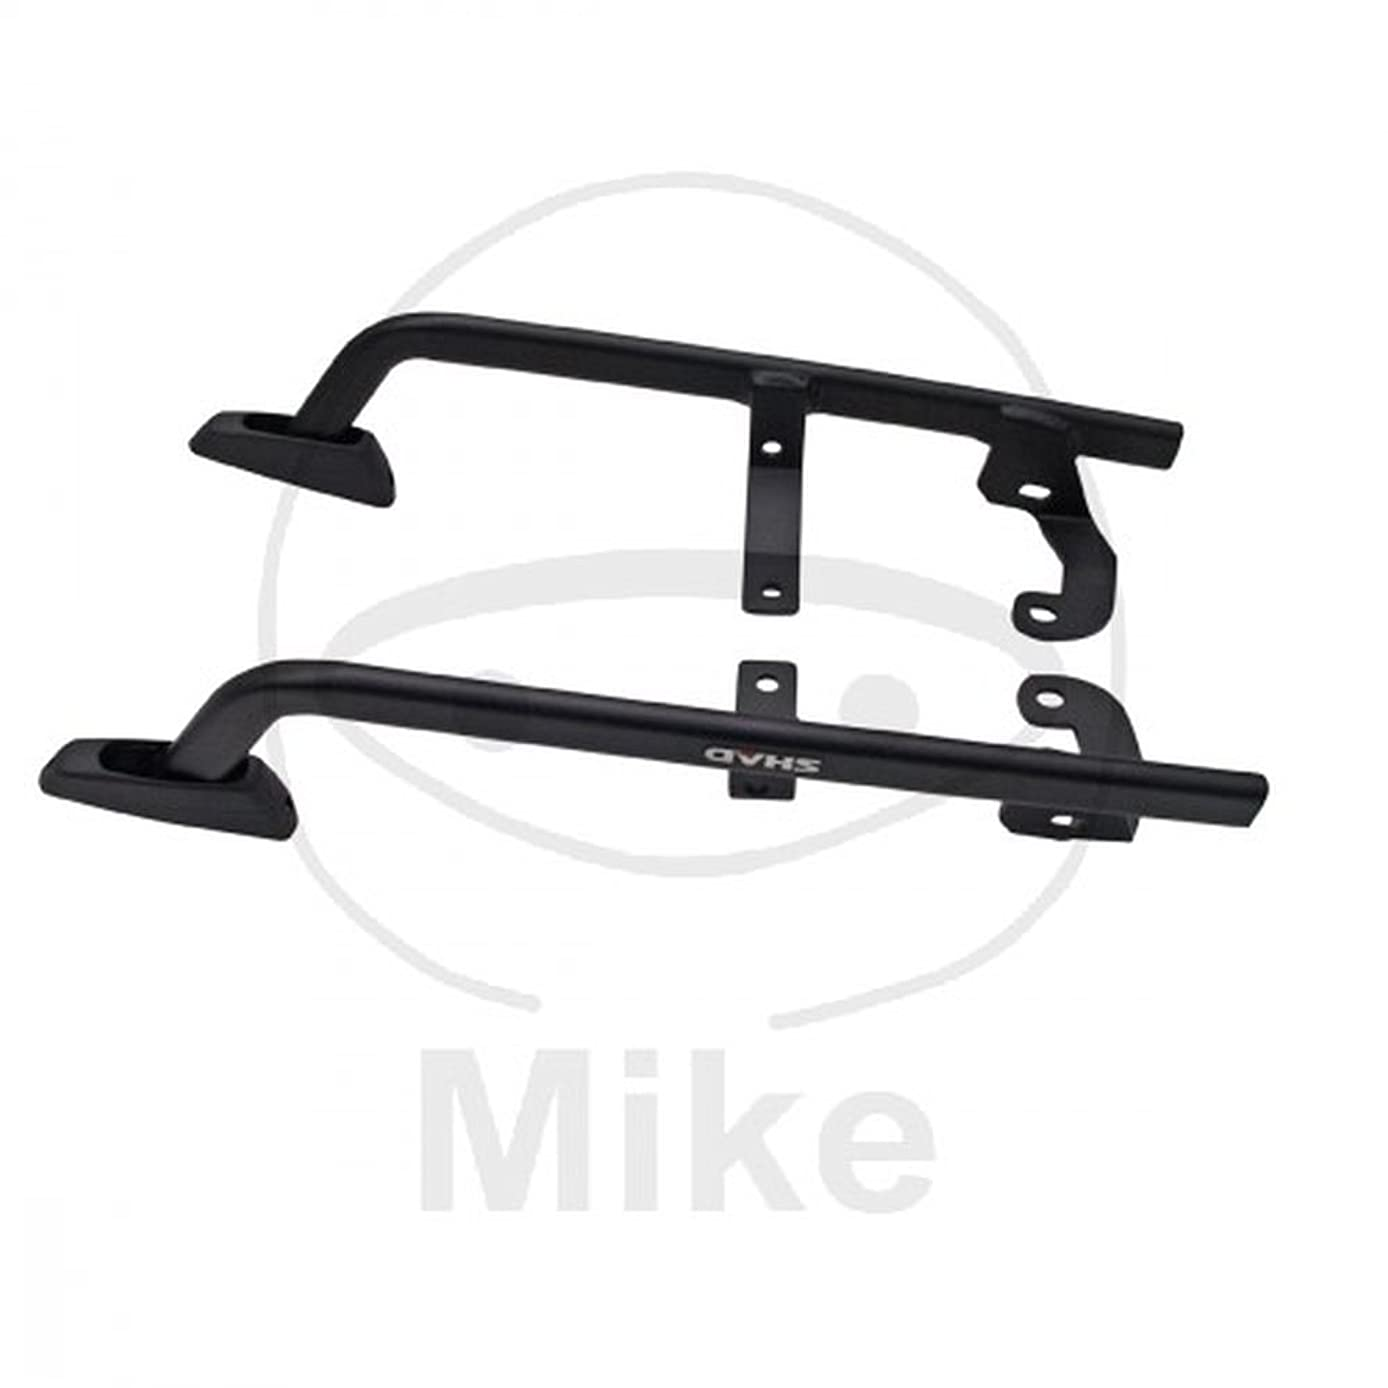 Trunk supports, anchors, settings Top Master